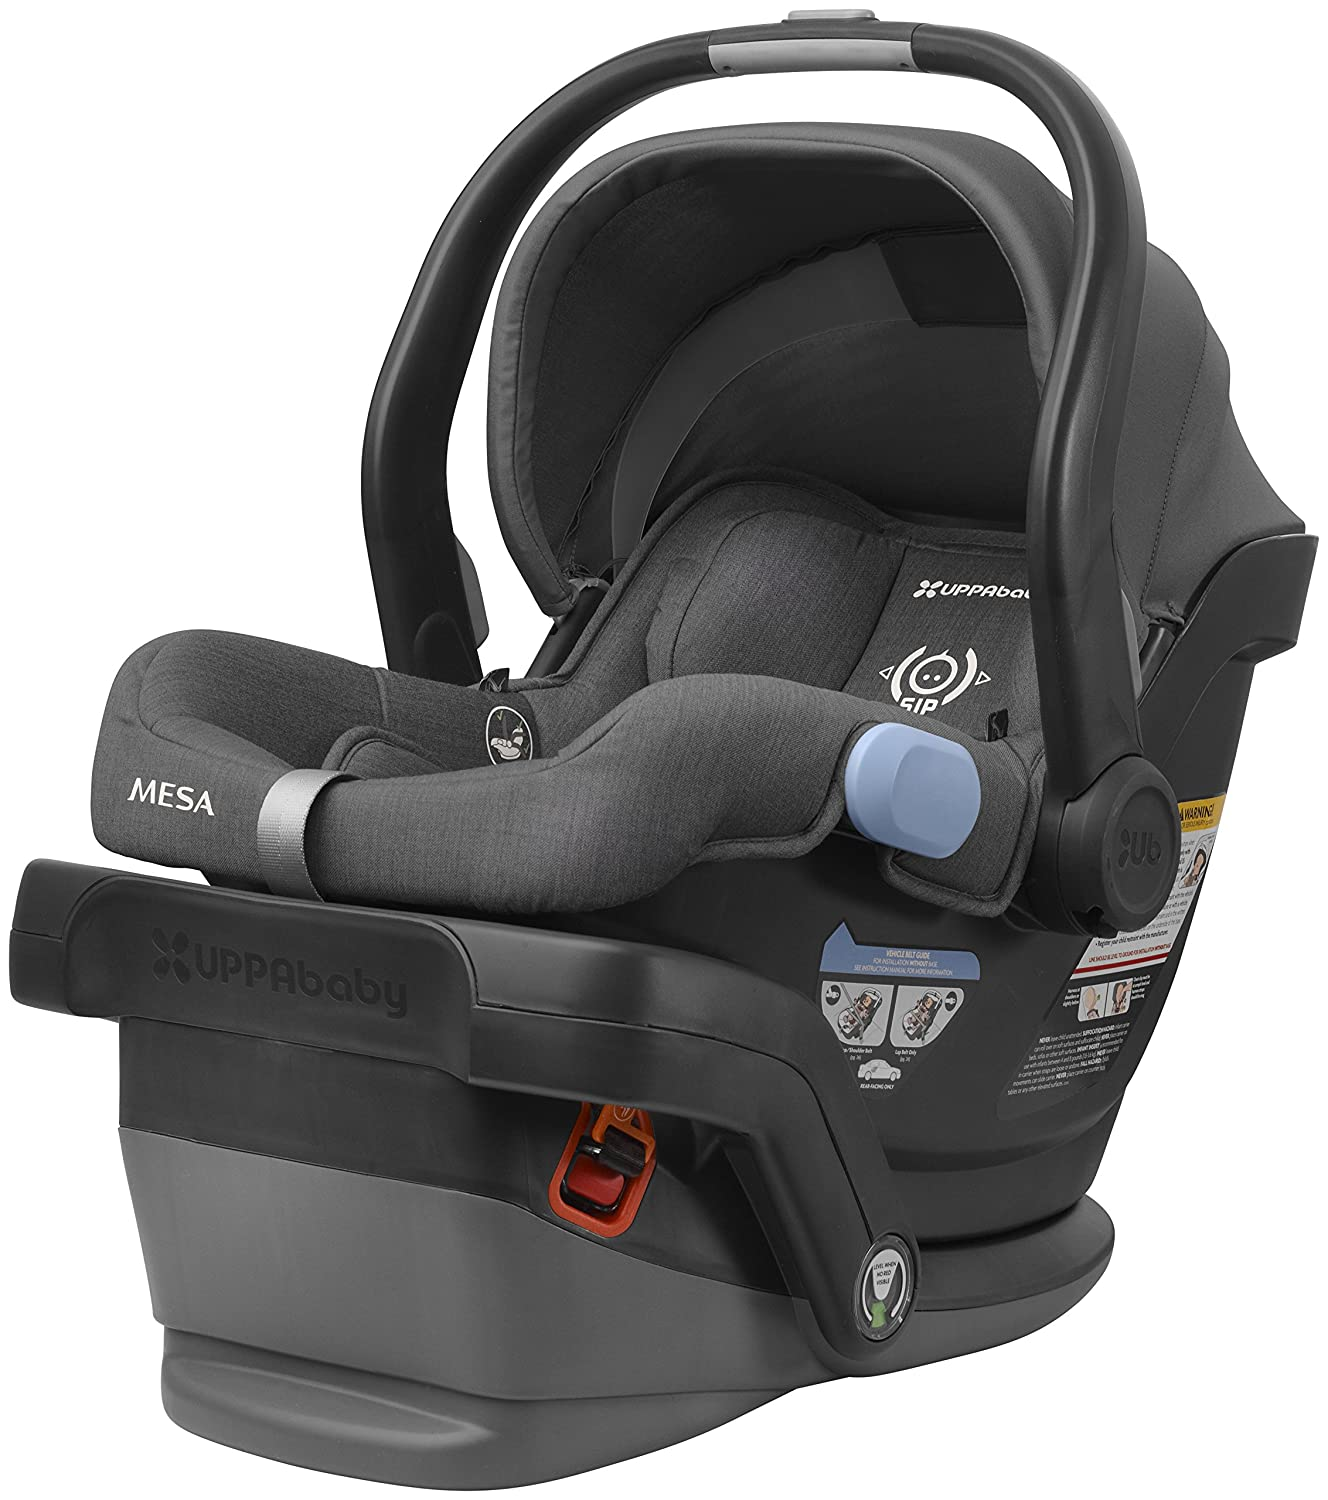 2018 UPPAbaby MESA Infant Car Seat -Jordan (Charcoal Melange) Merino Wool Version/Naturally Fire Retardant